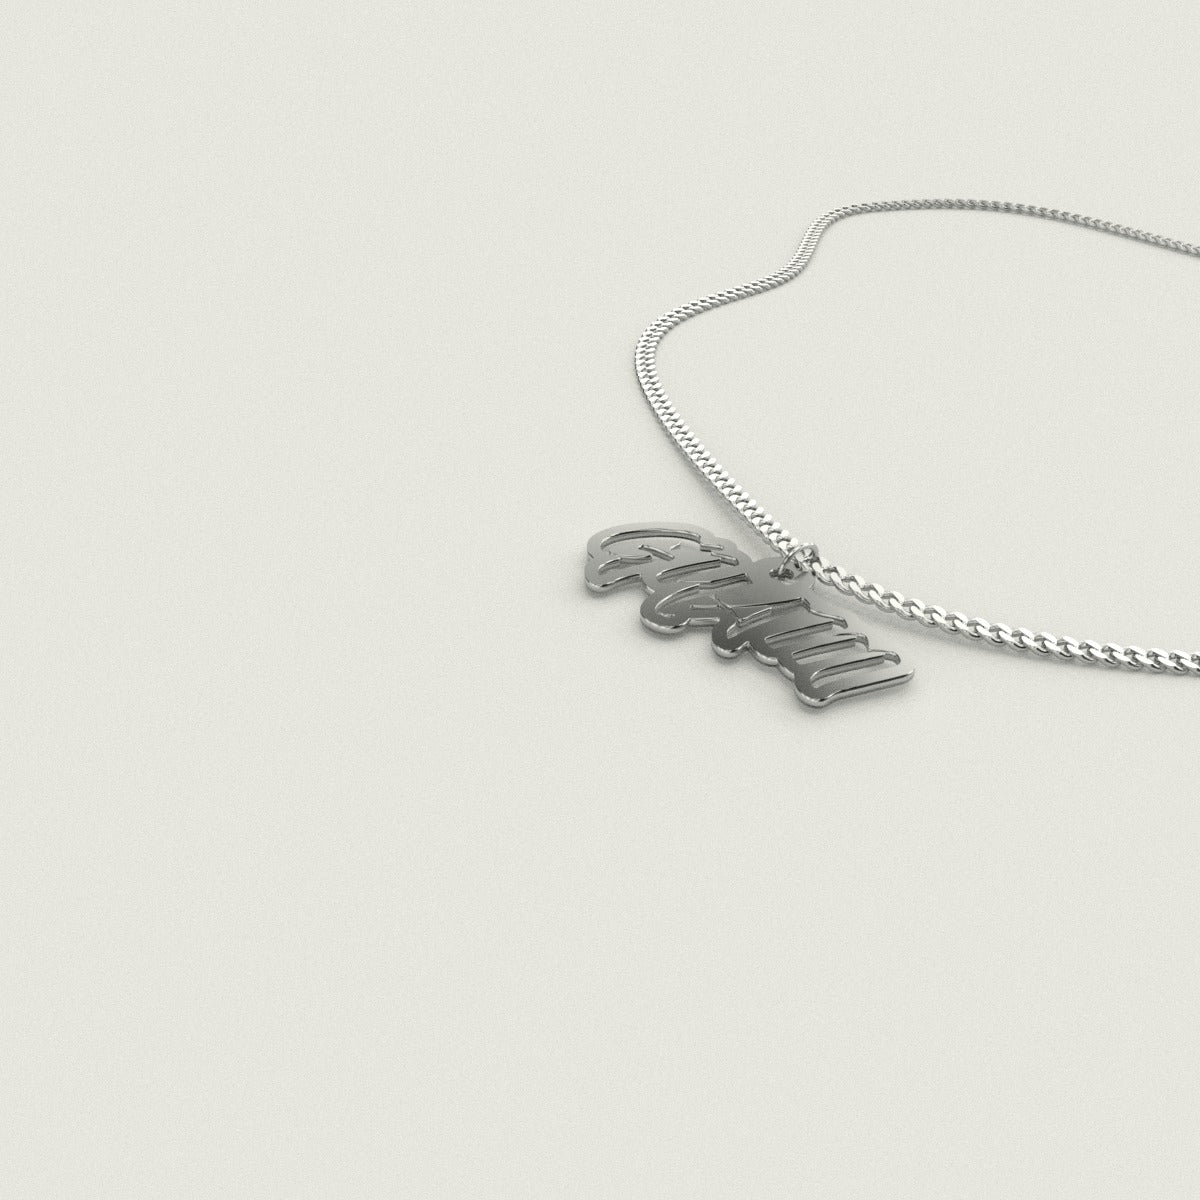 Guam Cutout Sterling Silver Necklace